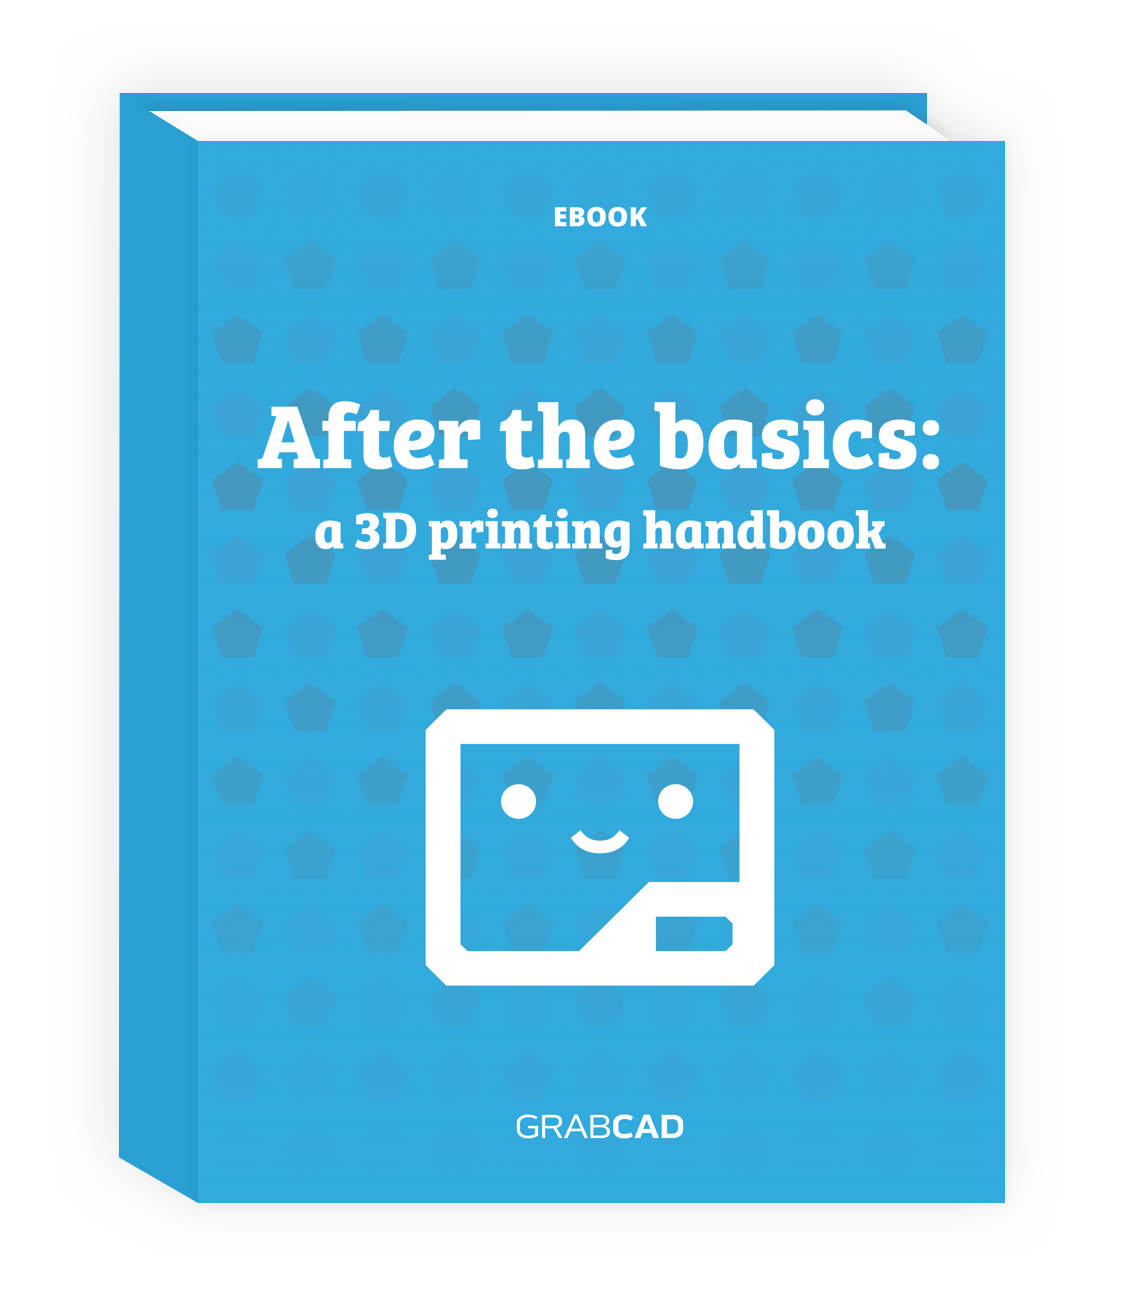 Free Ebook A 3d Printing Handbook From Grabcadcom Do It Yourself Learn More At Help Com Is Giant Gap Between Learning Material For Beginners And Content Meant The Extremely Experienced Were Here To Get